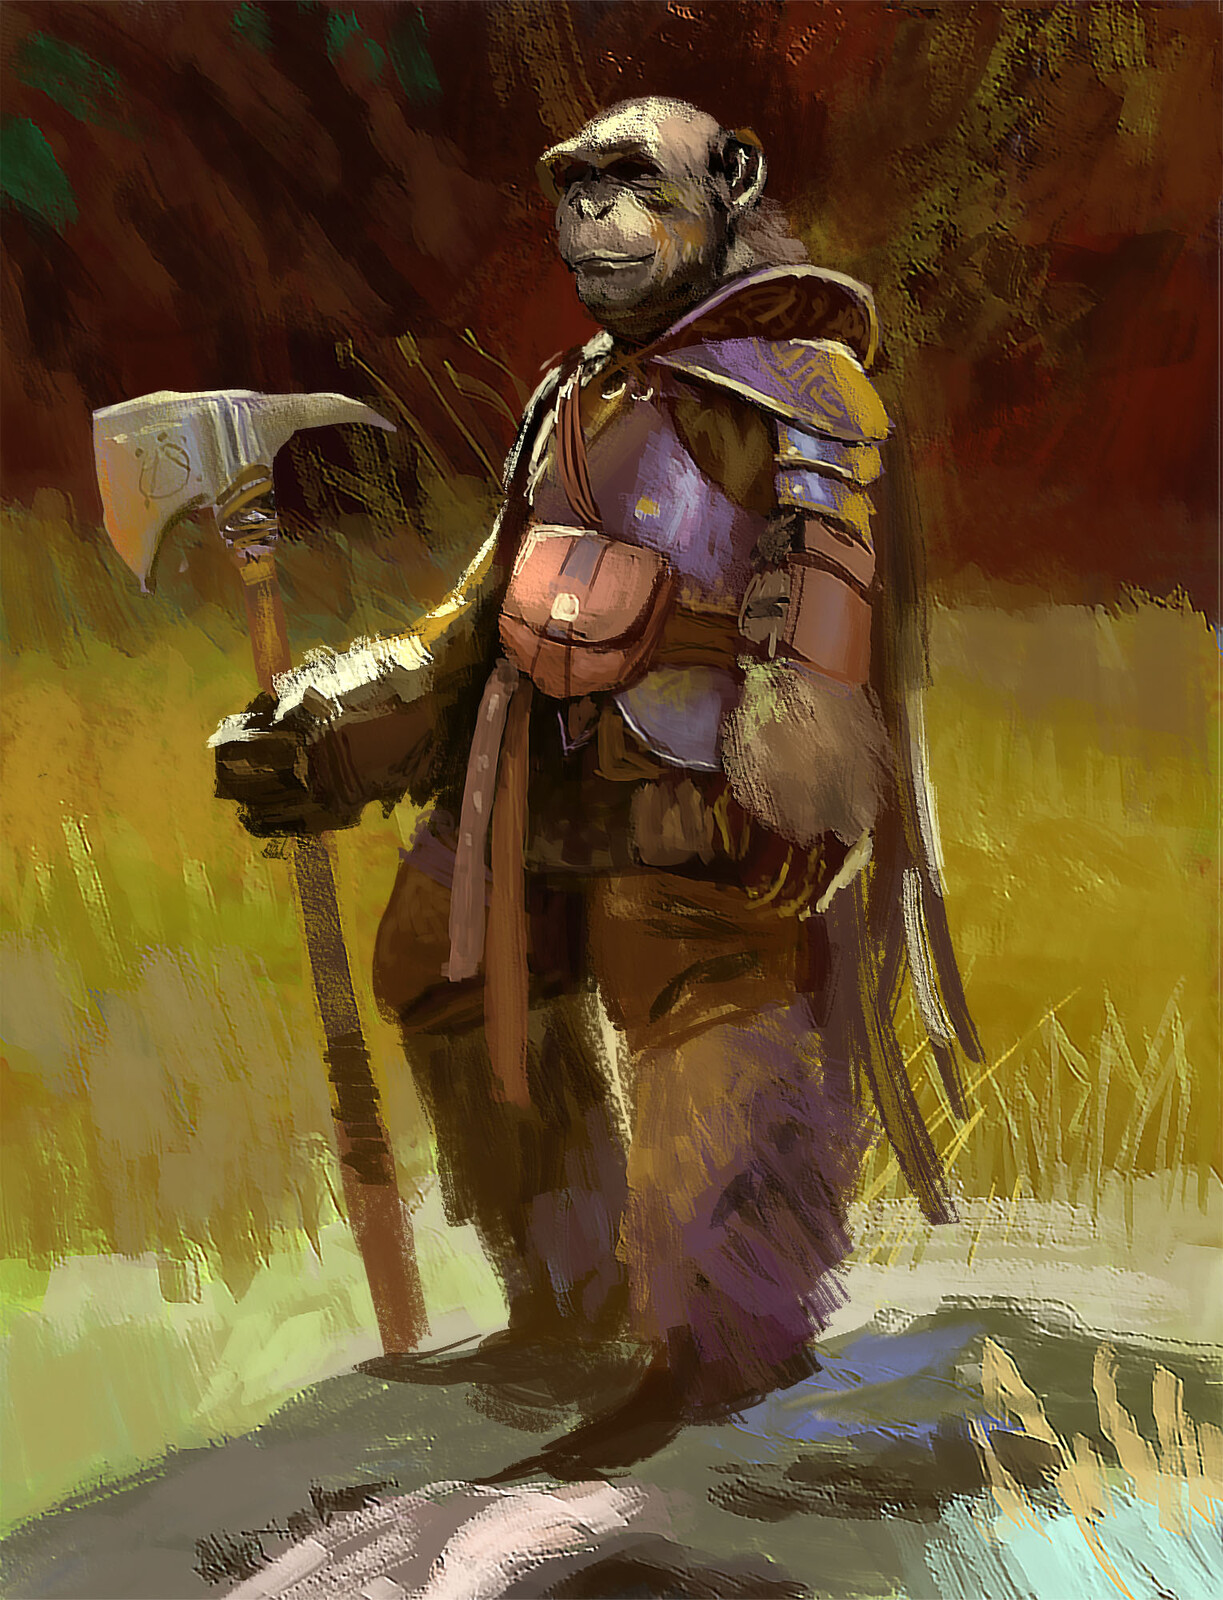 Study: John Park 06 (90-120 min) Mixing it up again with another John Park study. That brush economy… I have to stop thinking so much about details while painting, otherwise I will never get even near to that awesome looseness...